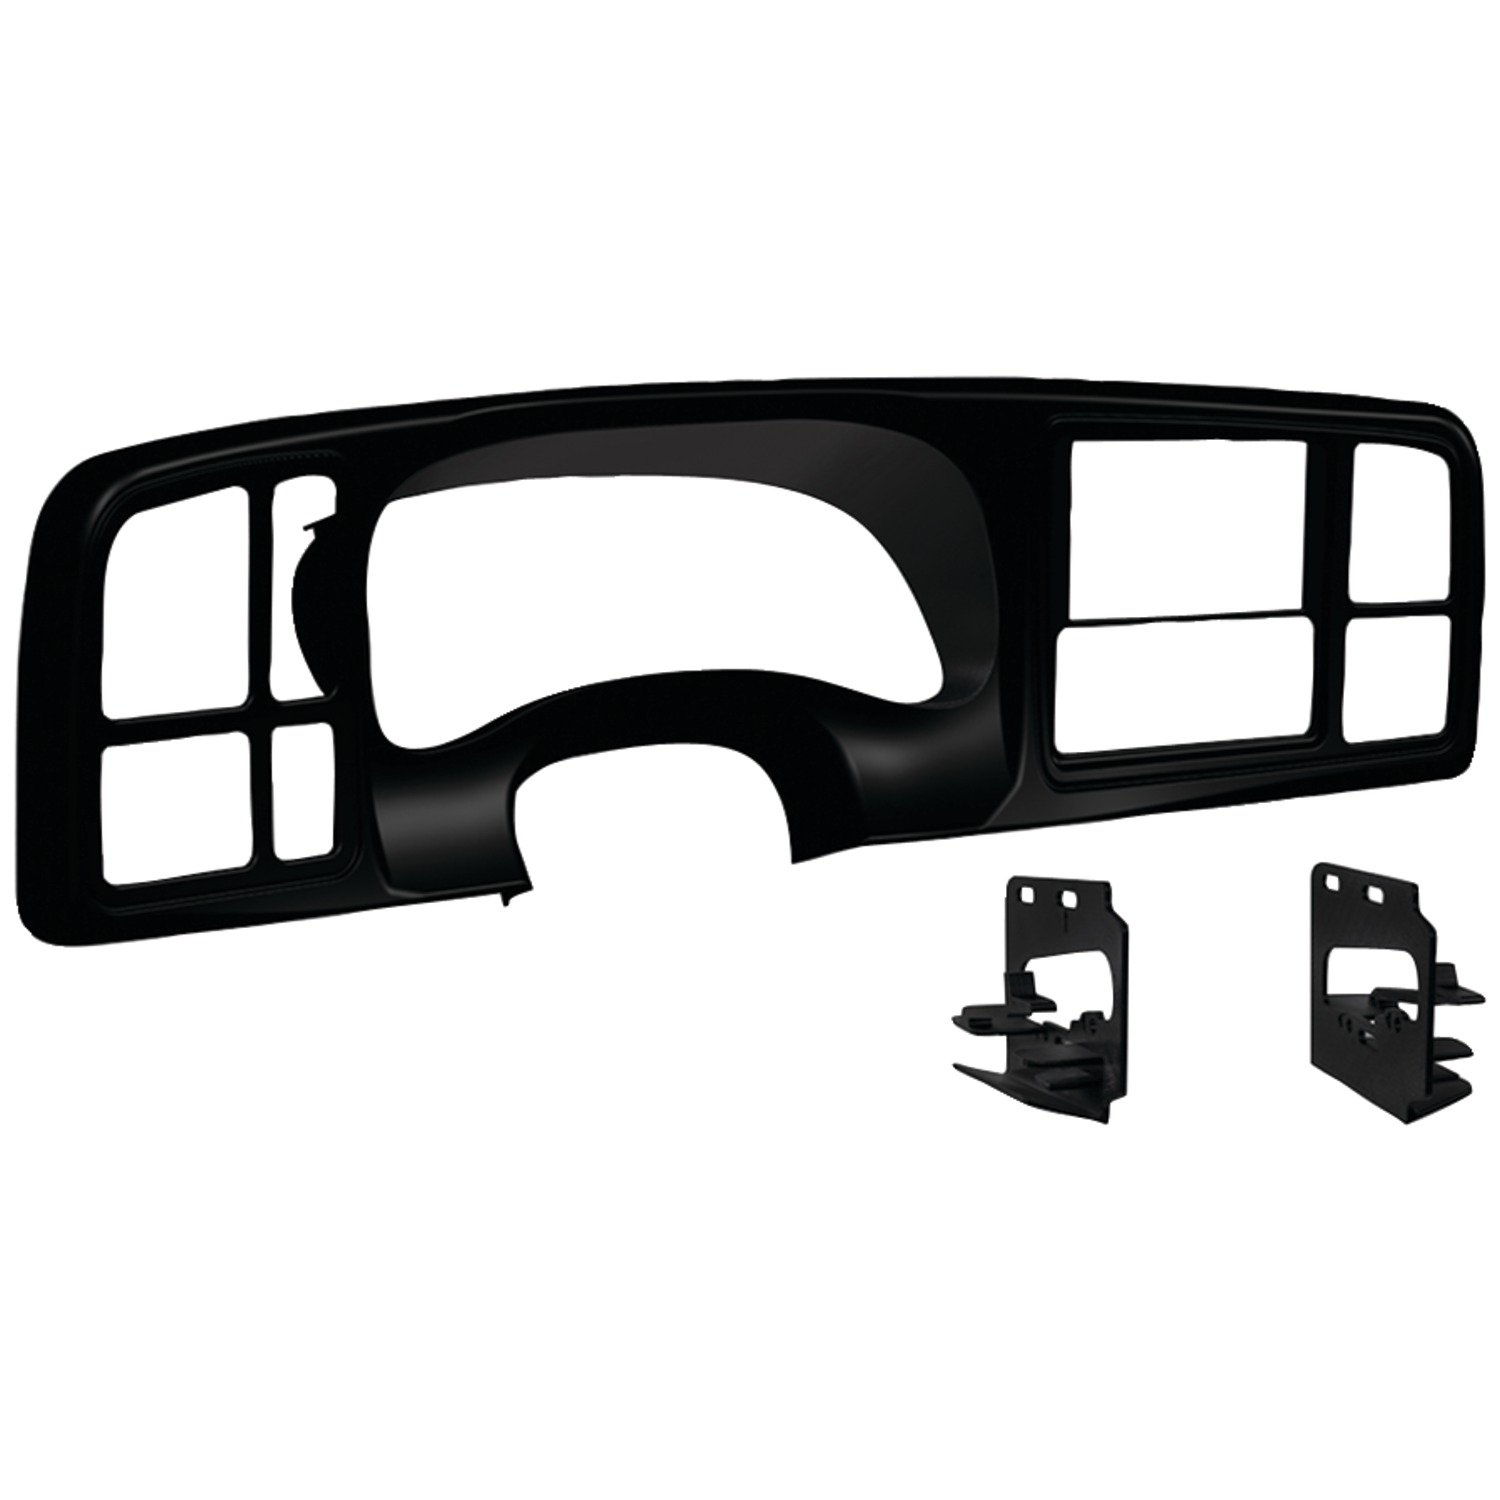 Metra DP-3002B Double DIN Dash Kit for 1999 - 2002 GM Full-Size Trucks/SUV's (Matte Black) by Metra